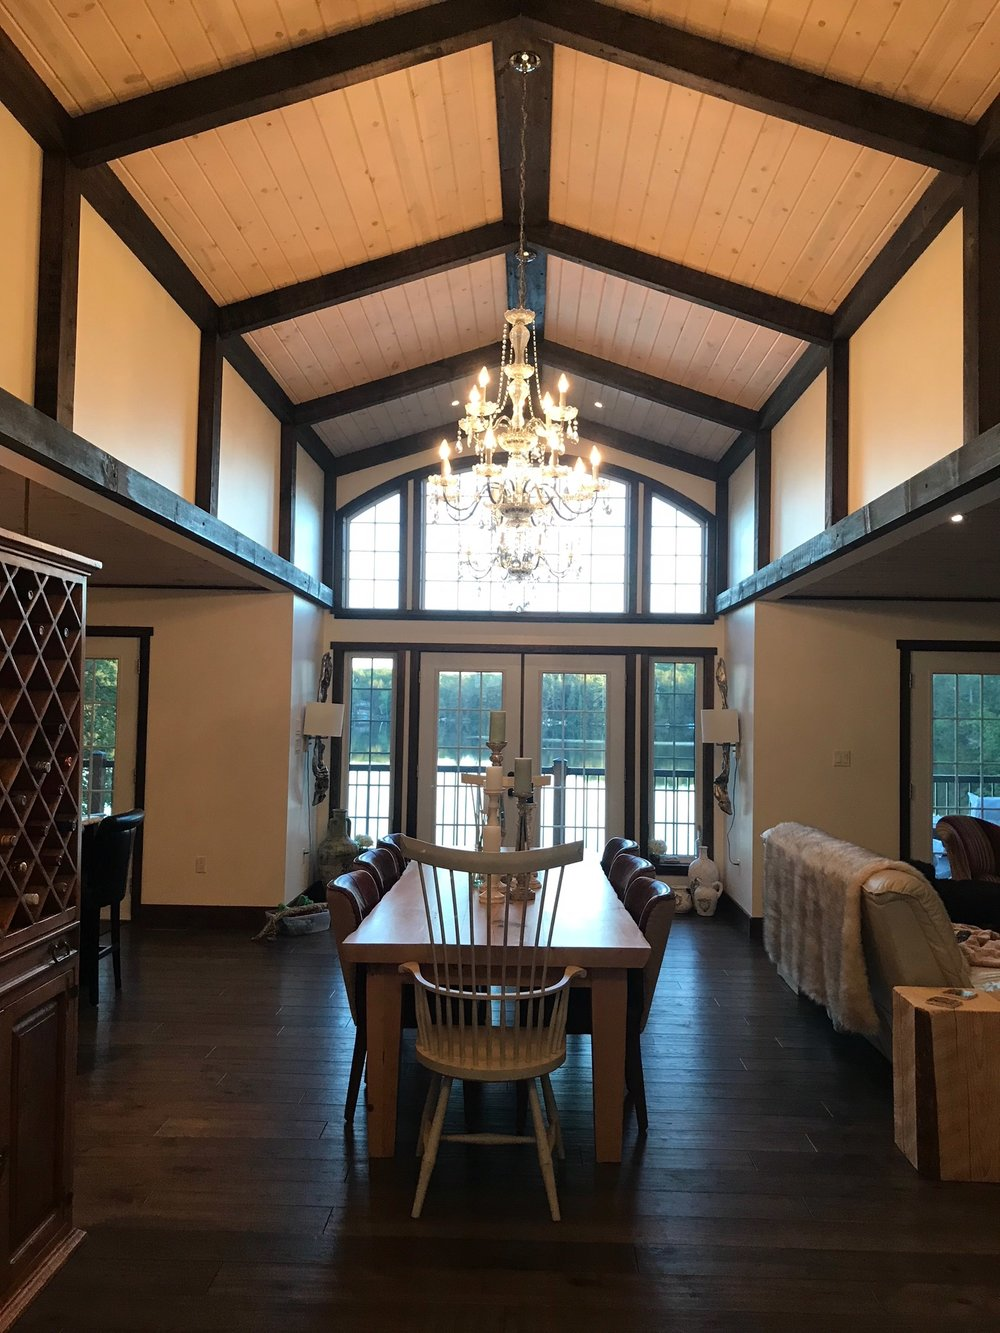 Haliburton Home Interior Dining Room